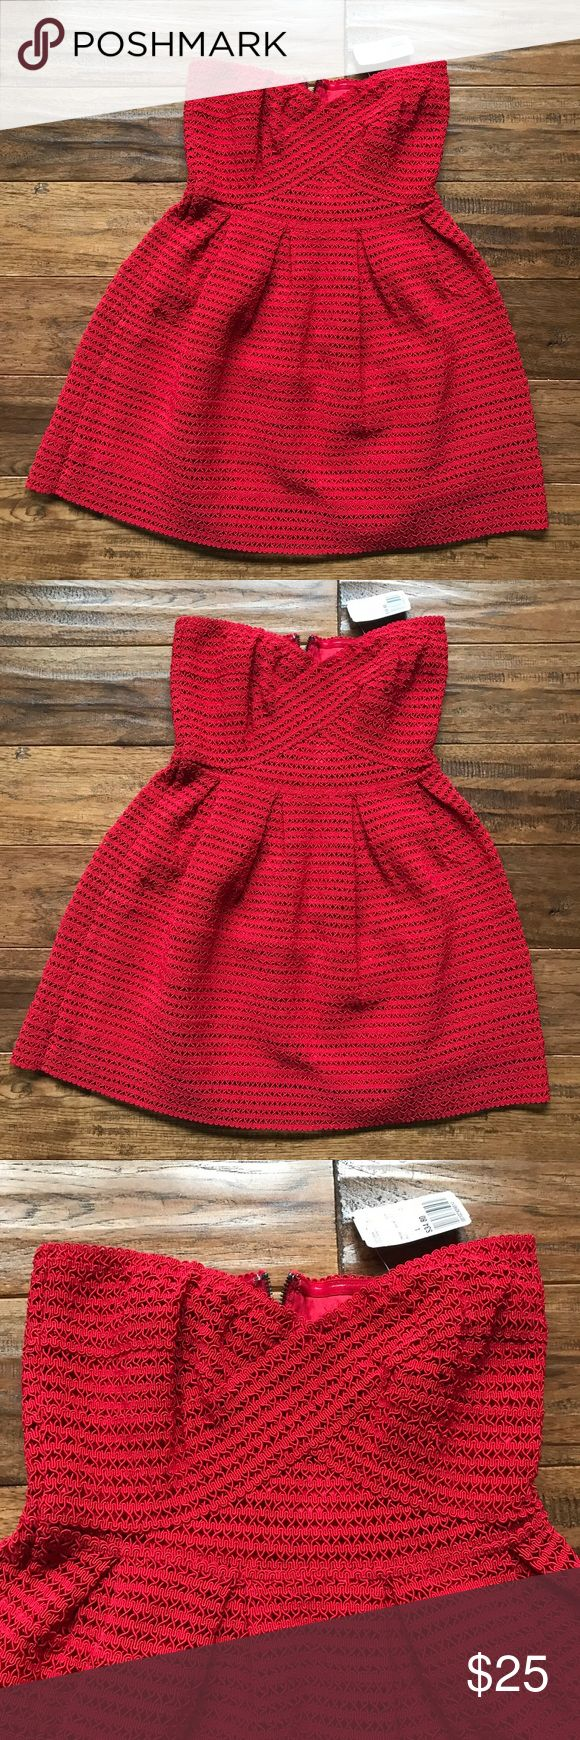 🆕🆕Forever 21 Strapless Red Dress 🔥🔥 NWT Forever 21 Strapless Red Dress💃💃.                                 🛑🛑PLEASE BE AWARE THIS DRESS IS VERY SHORT. WOULD NOT SUGGEST TO TALLER SHOPPERS Forever 21 Dresses Strapless